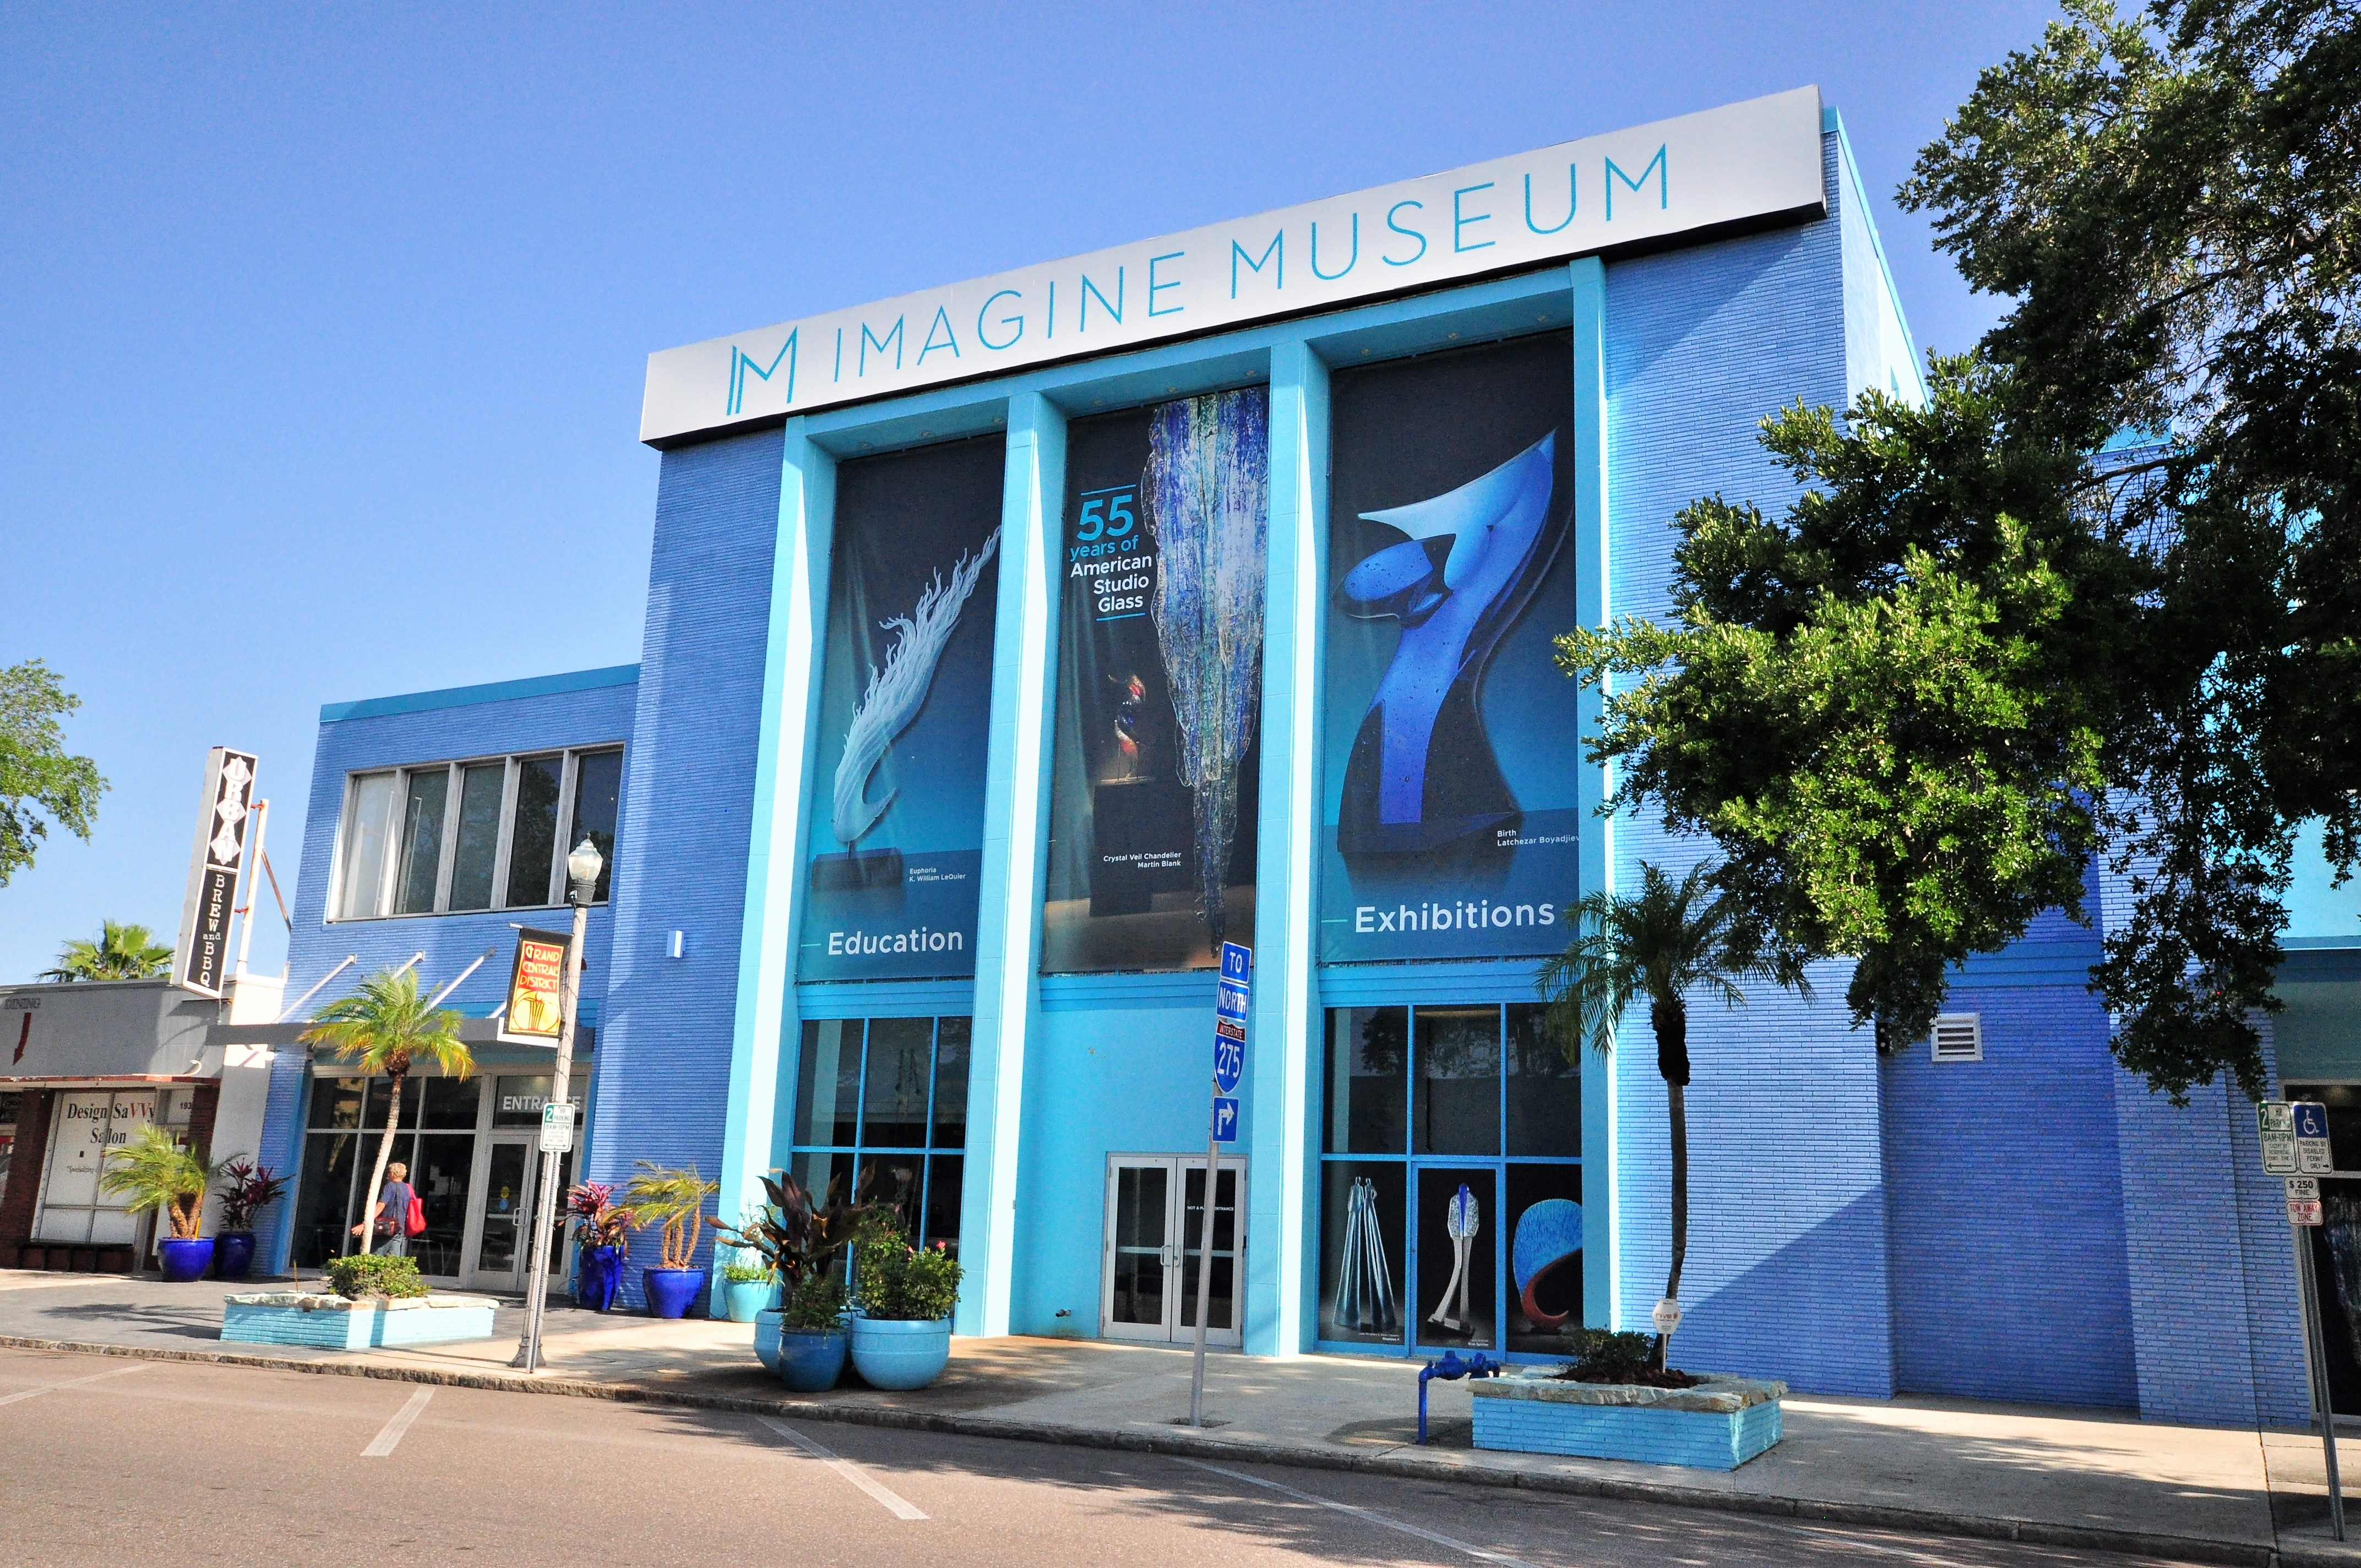 Imagine Museum, Grand Central District in St Petersburg Florida